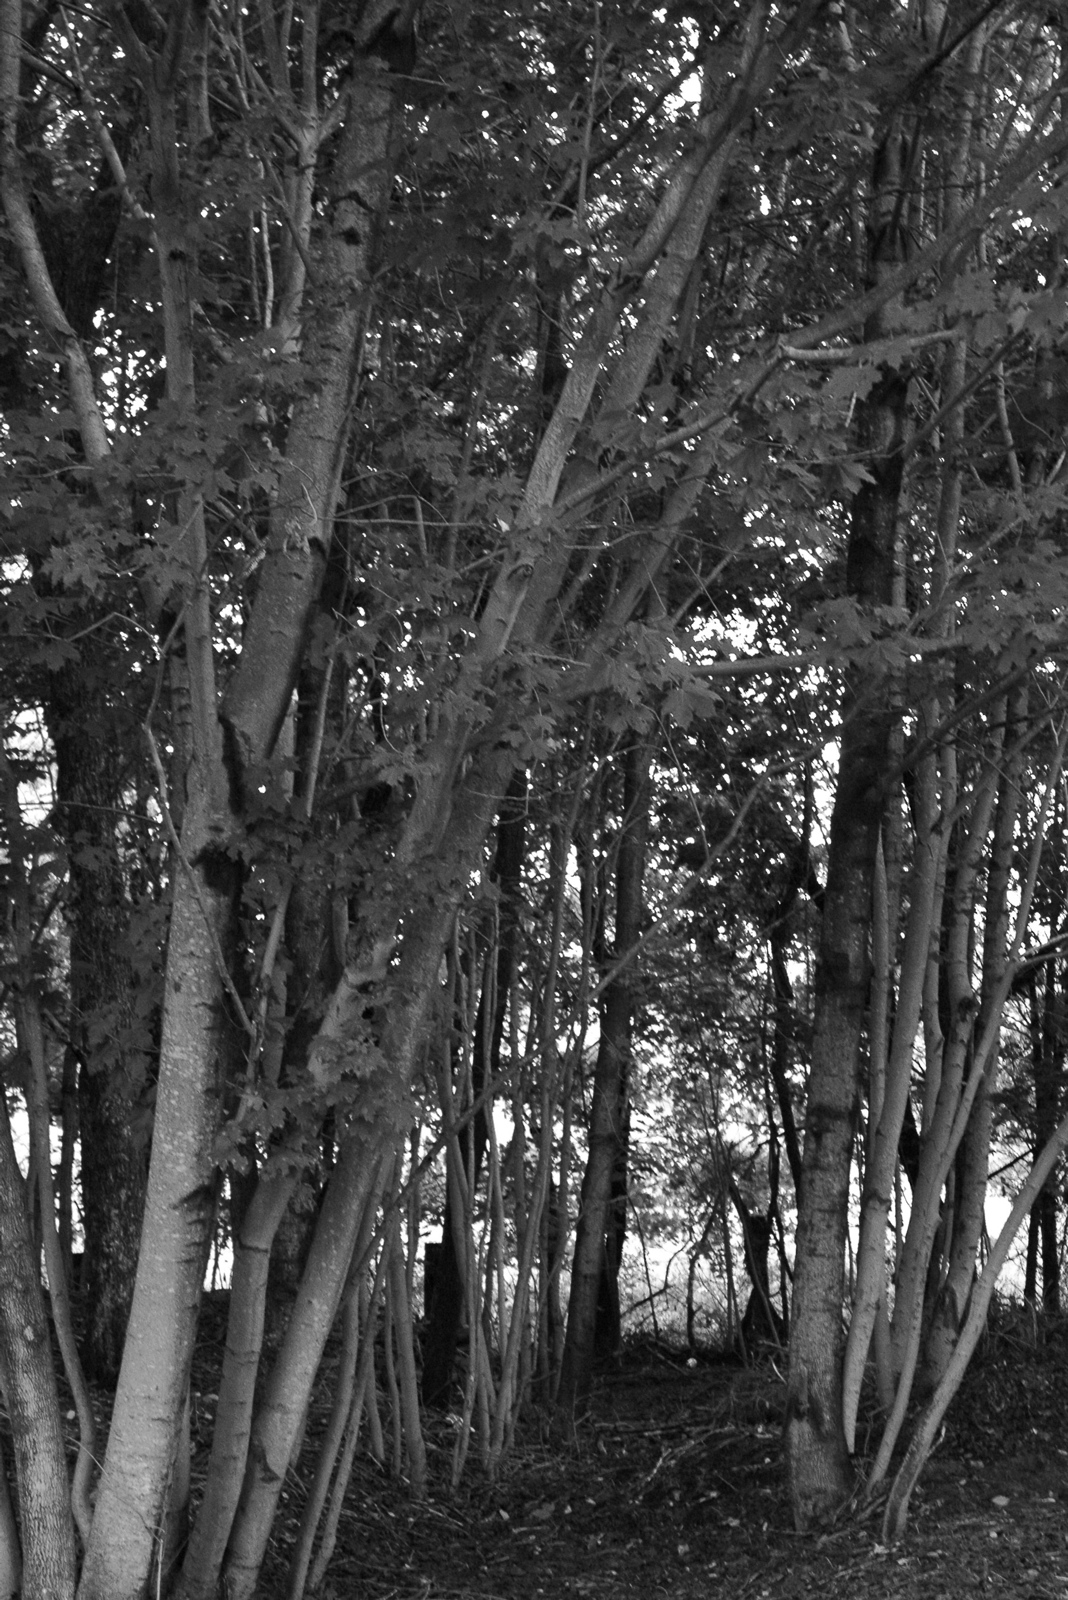 Trees, Branches, Bspo06, Forest, Woods, HQ Photo